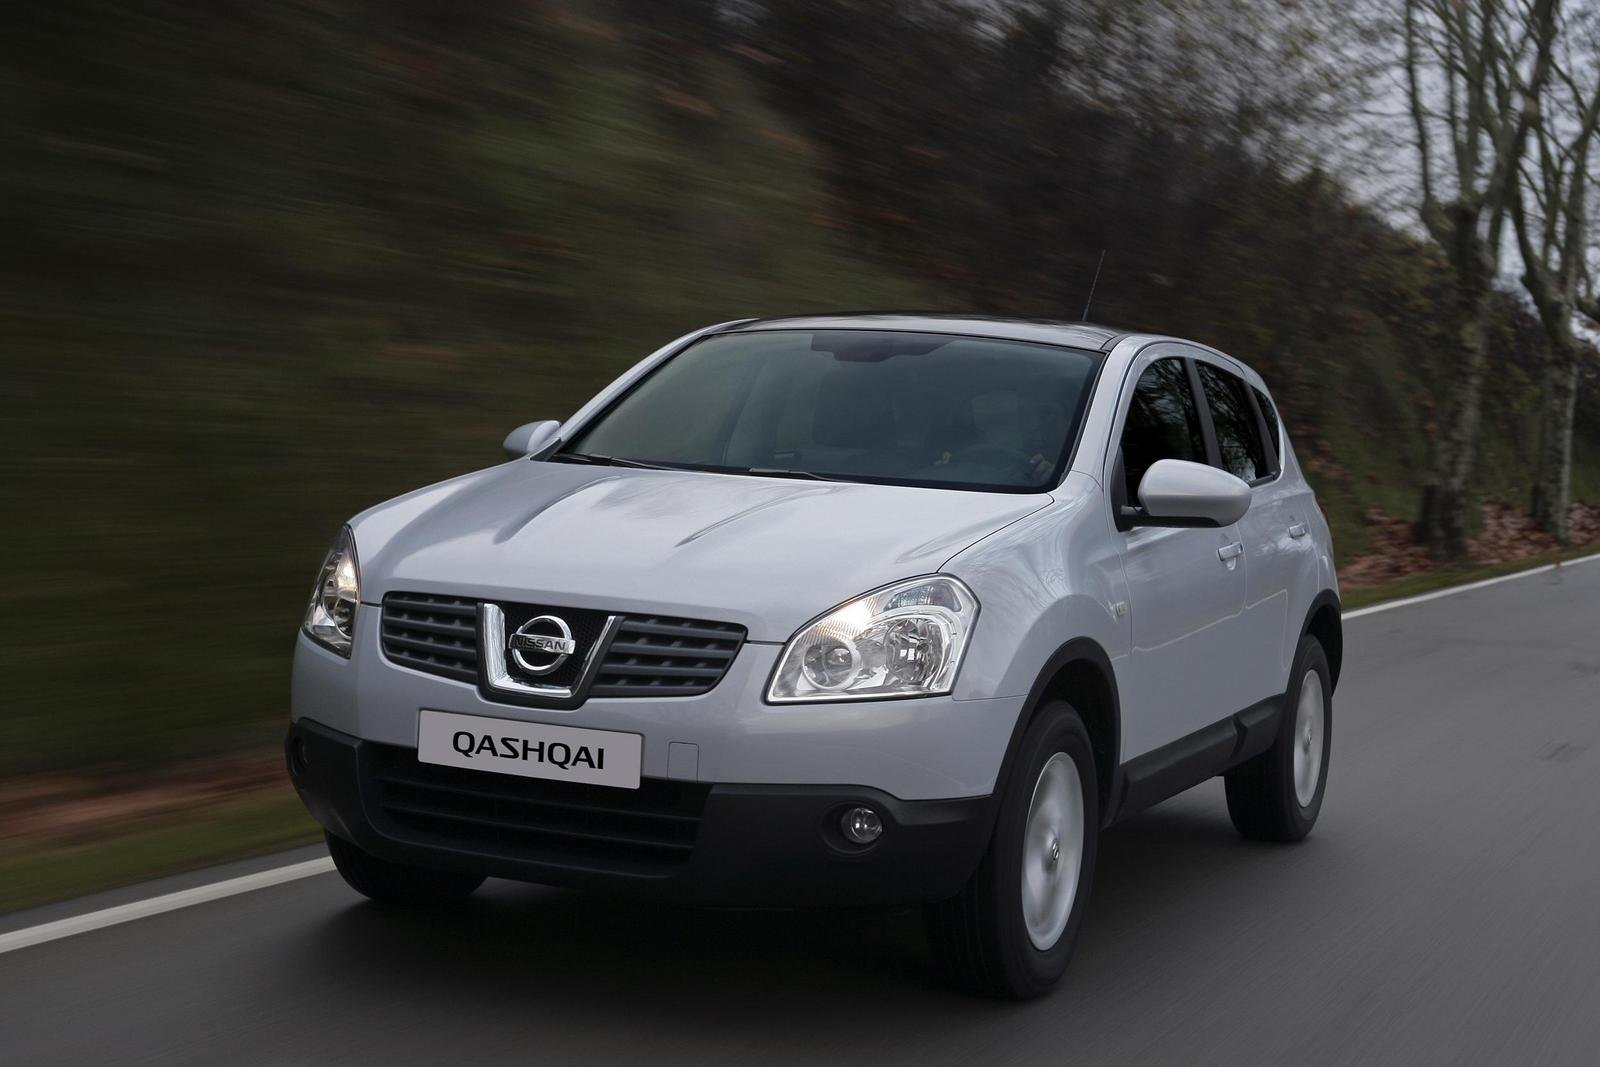 2007 nissan qashqai picture 144583 car review top speed. Black Bedroom Furniture Sets. Home Design Ideas